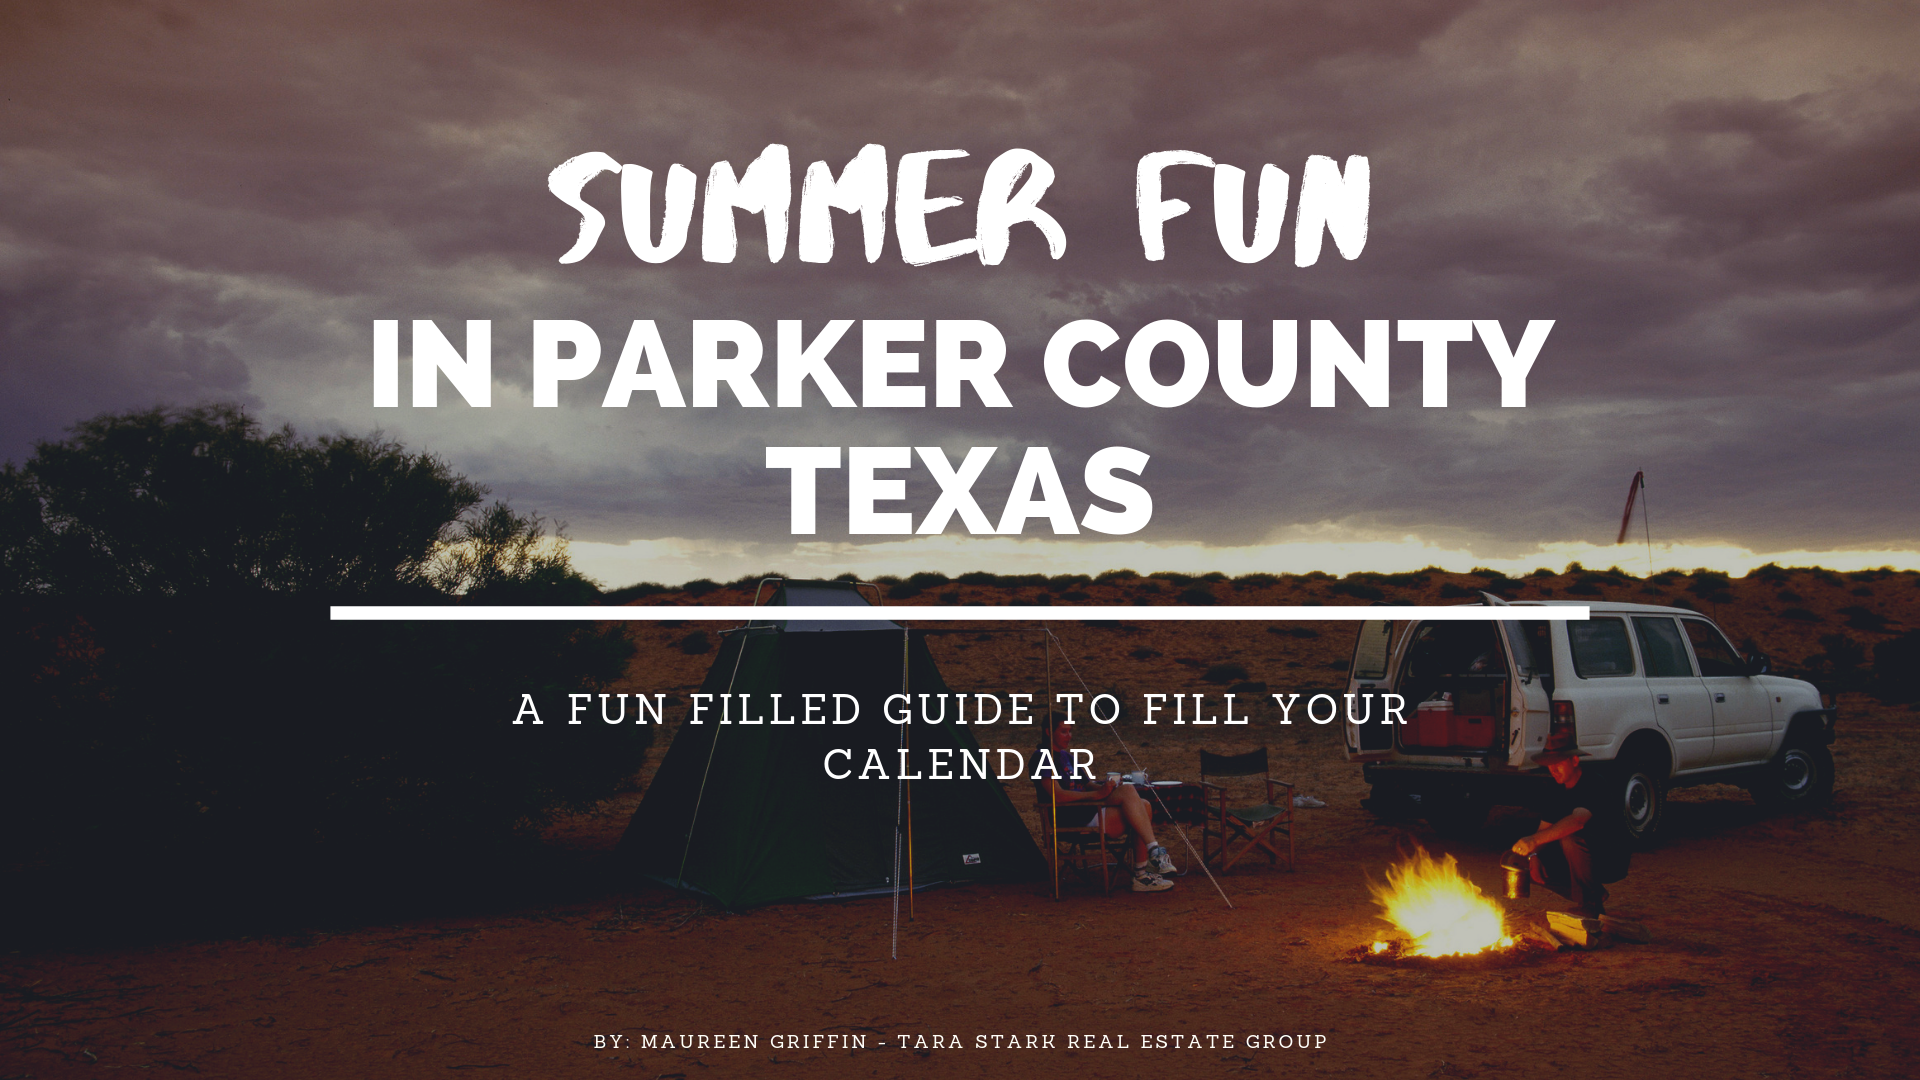 Summer Fun in Parker County Texas